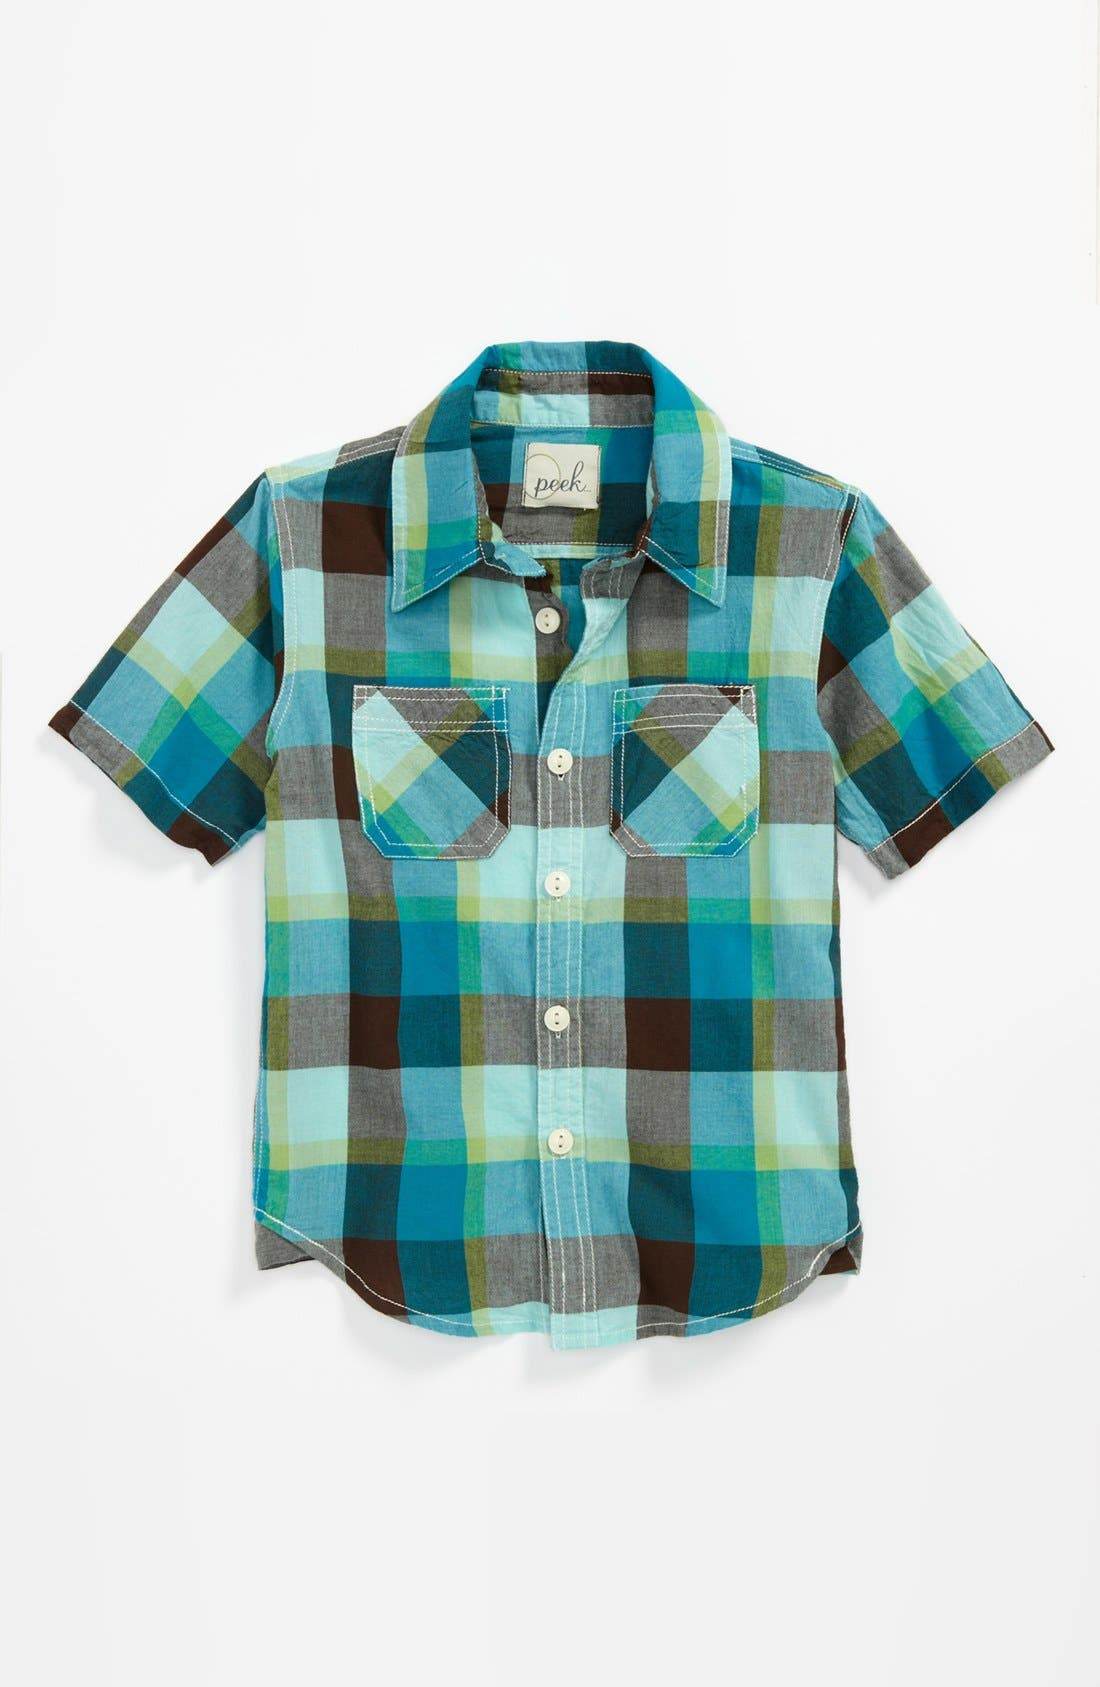 Alternate Image 1 Selected - Peek 'Clint' Utility Shirt (Big Boys)